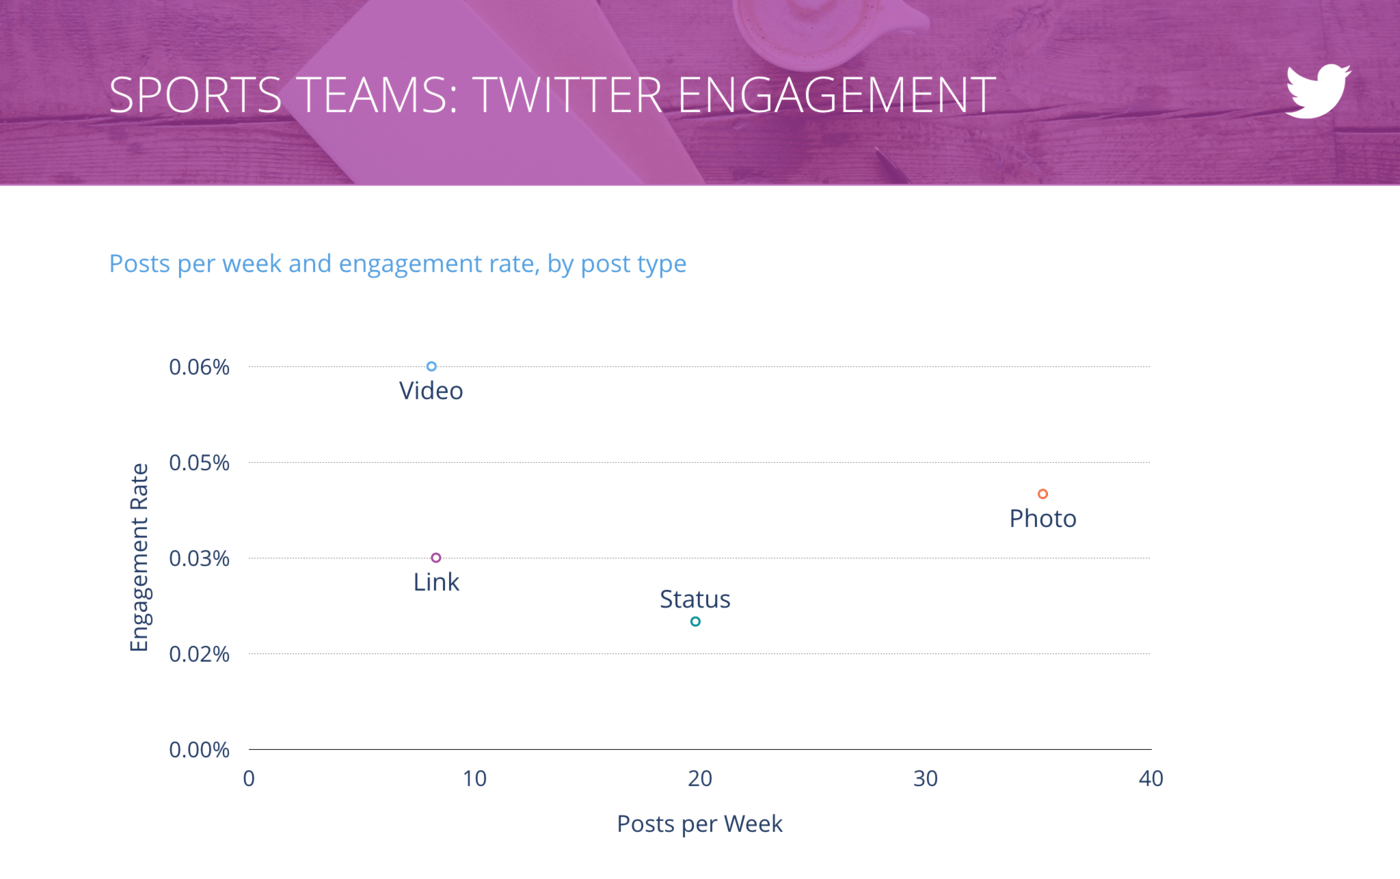 slide for Tweets per Week vs. Engagement Rate per Tweet, Sports Teams